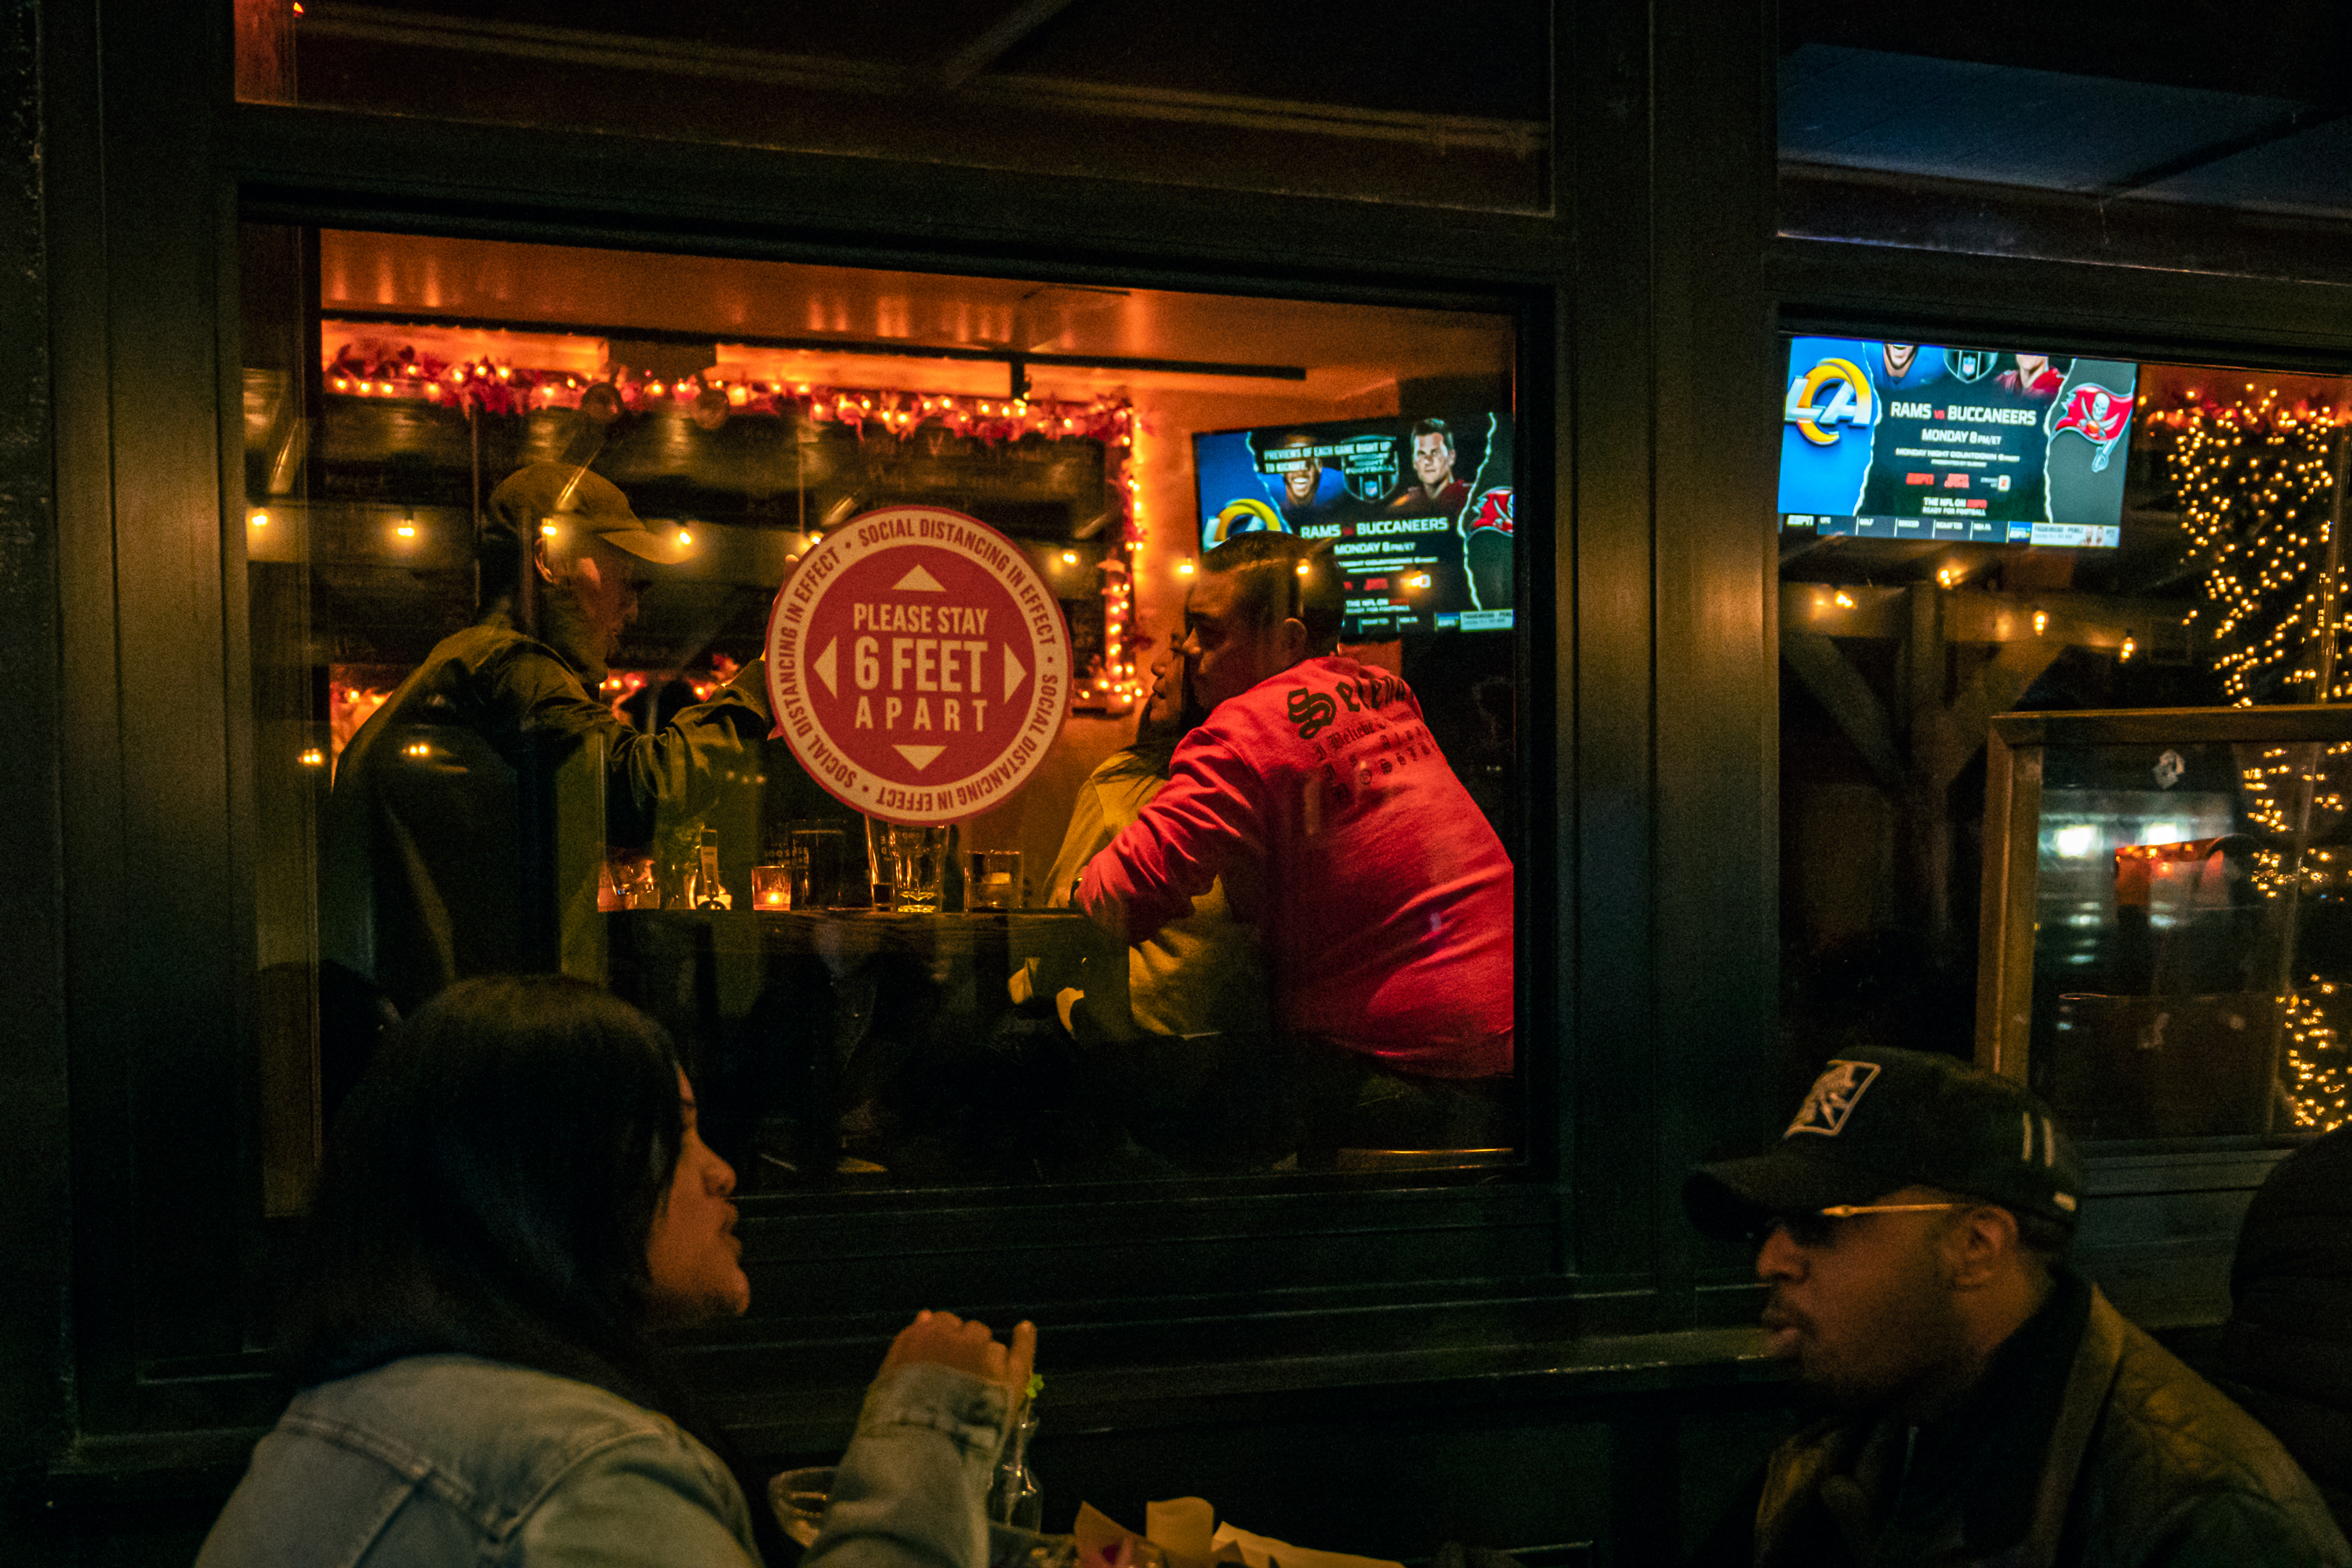 People eat at a sports bar in Greenwich Village, Nov. 20, 2020.